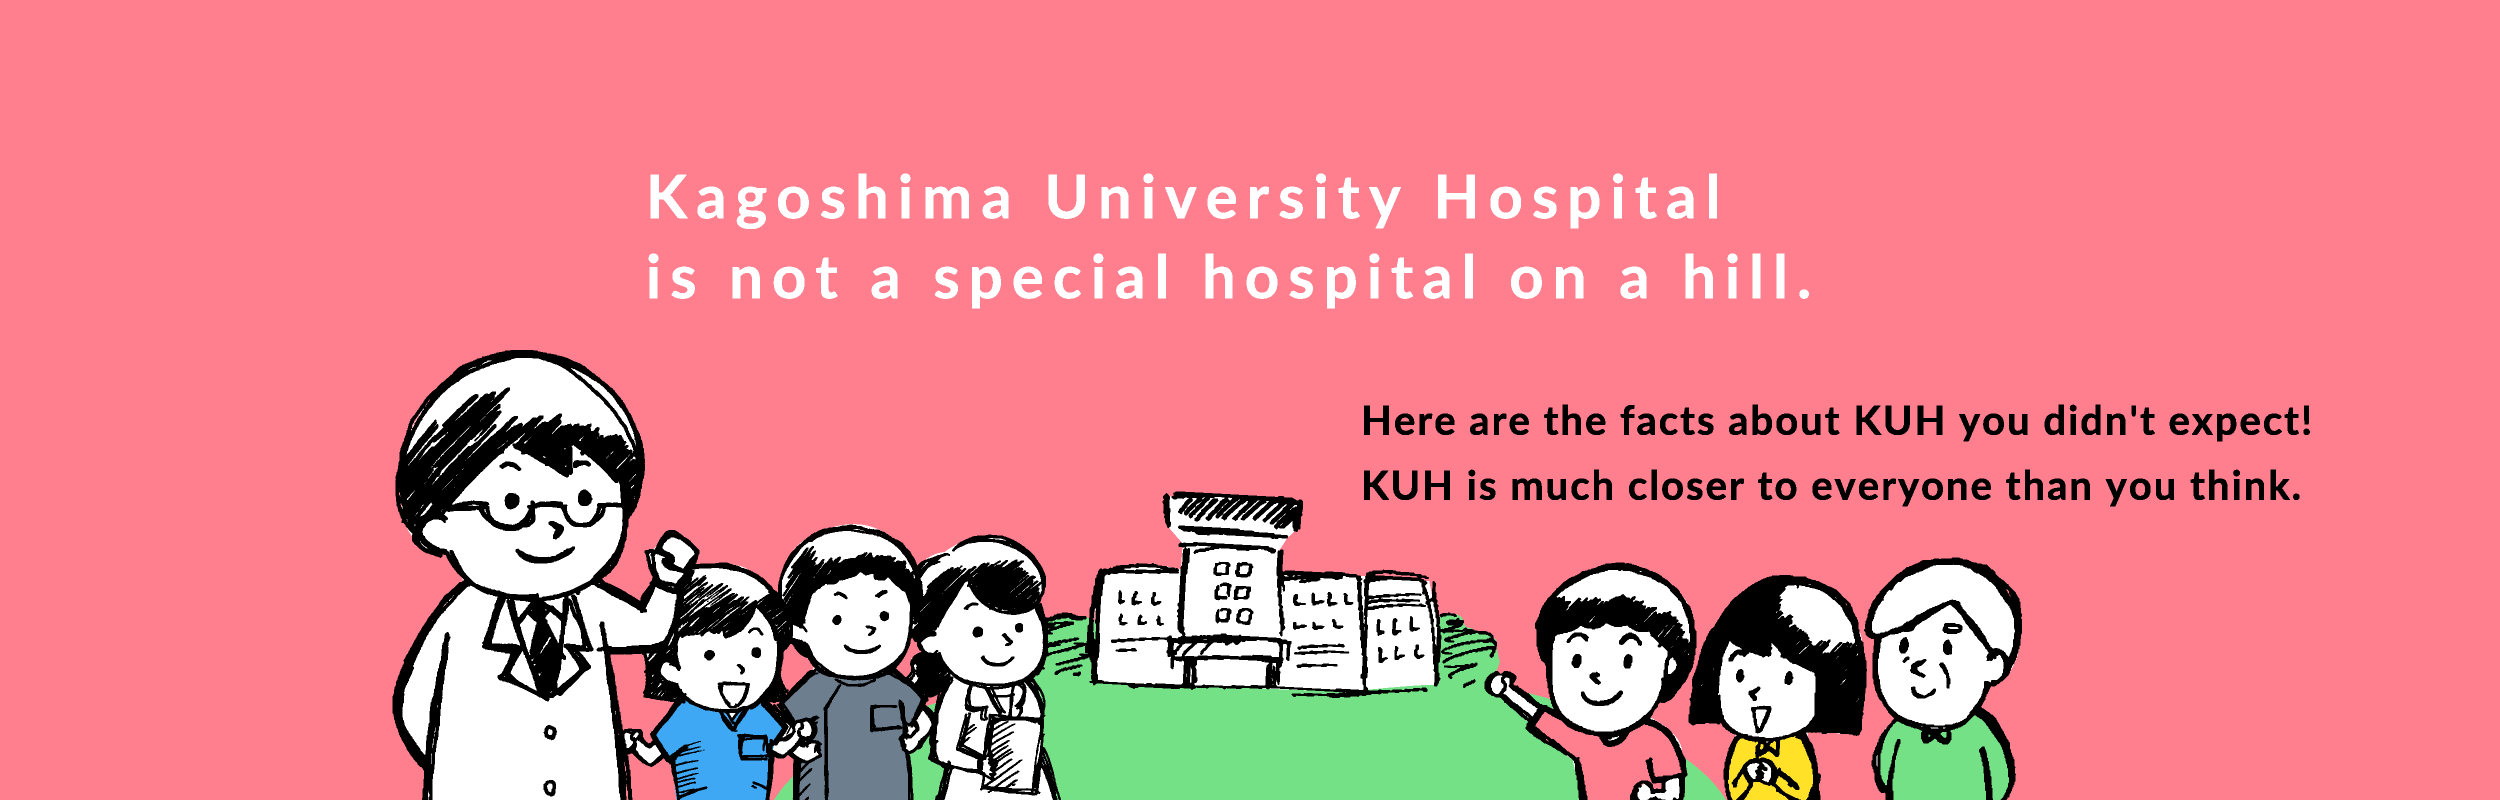 Here are the facts about KUH you didn't expect! KUH is much closer to everyone than you think.